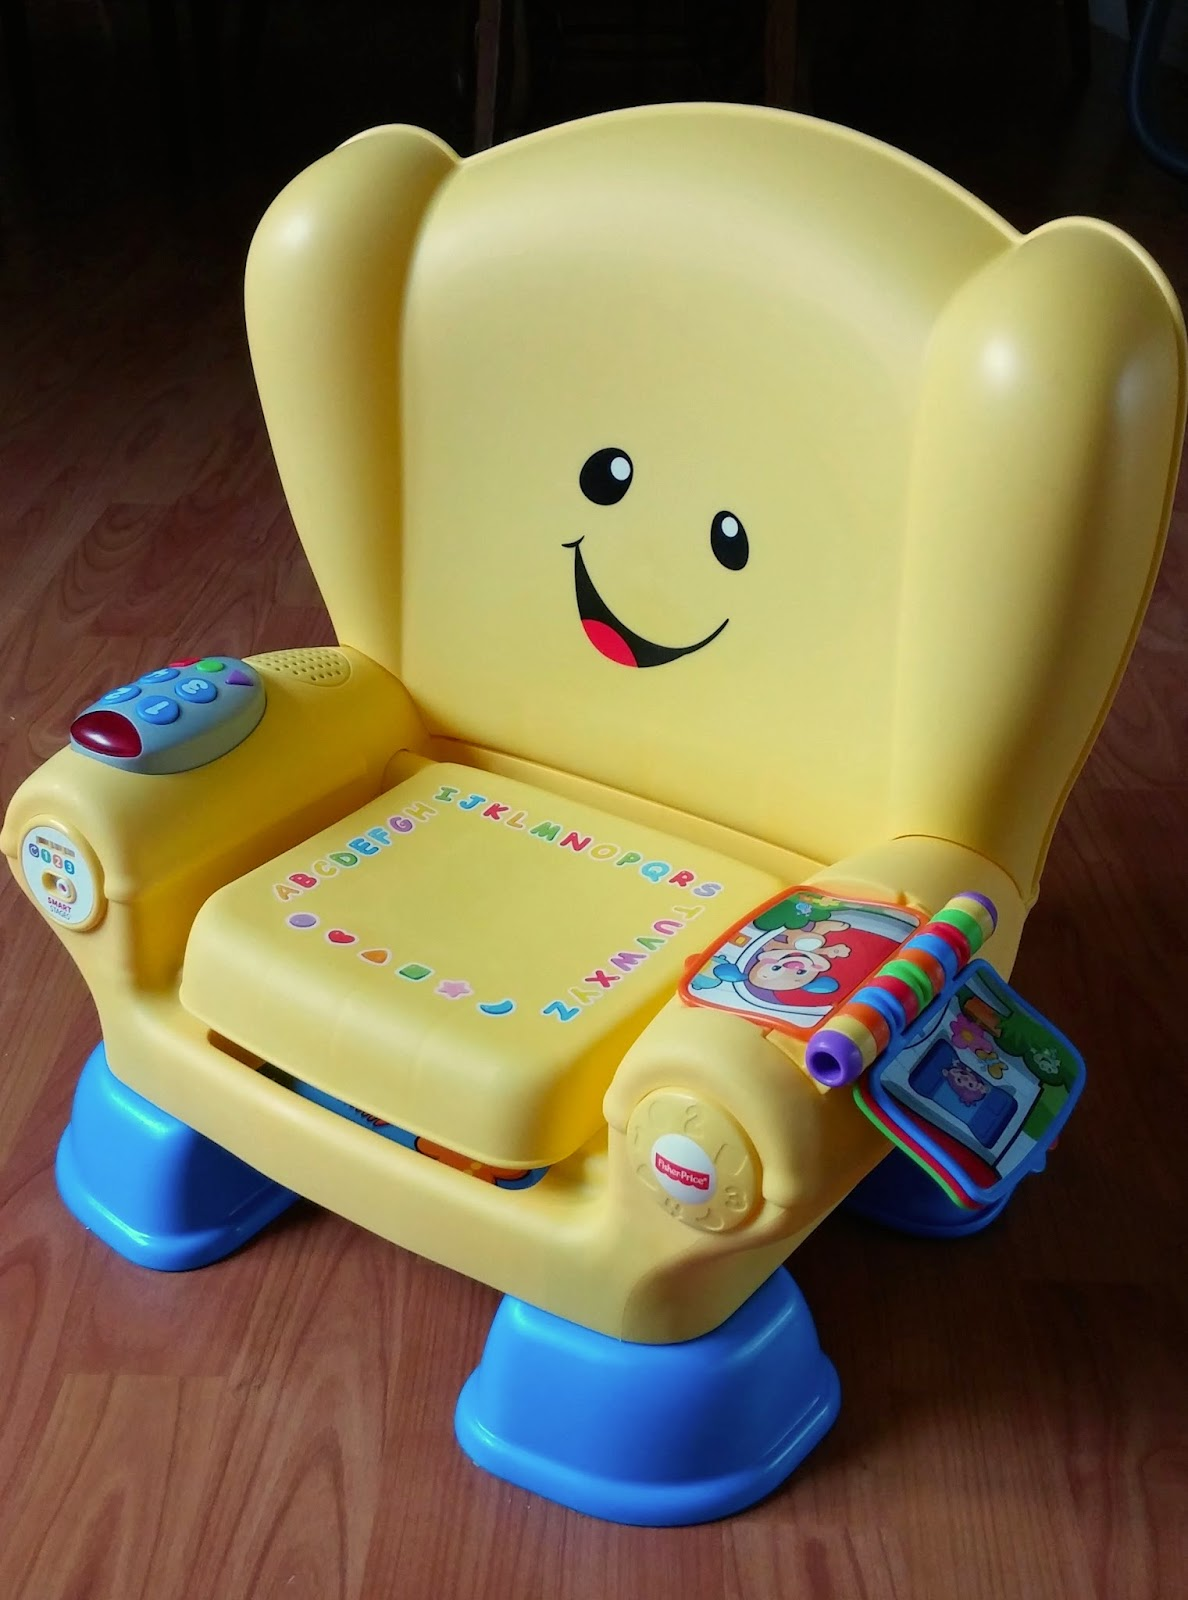 Fisher price smart stages chair - Introducing The New Fisher Price Laugh Learn Smart Stages Chair